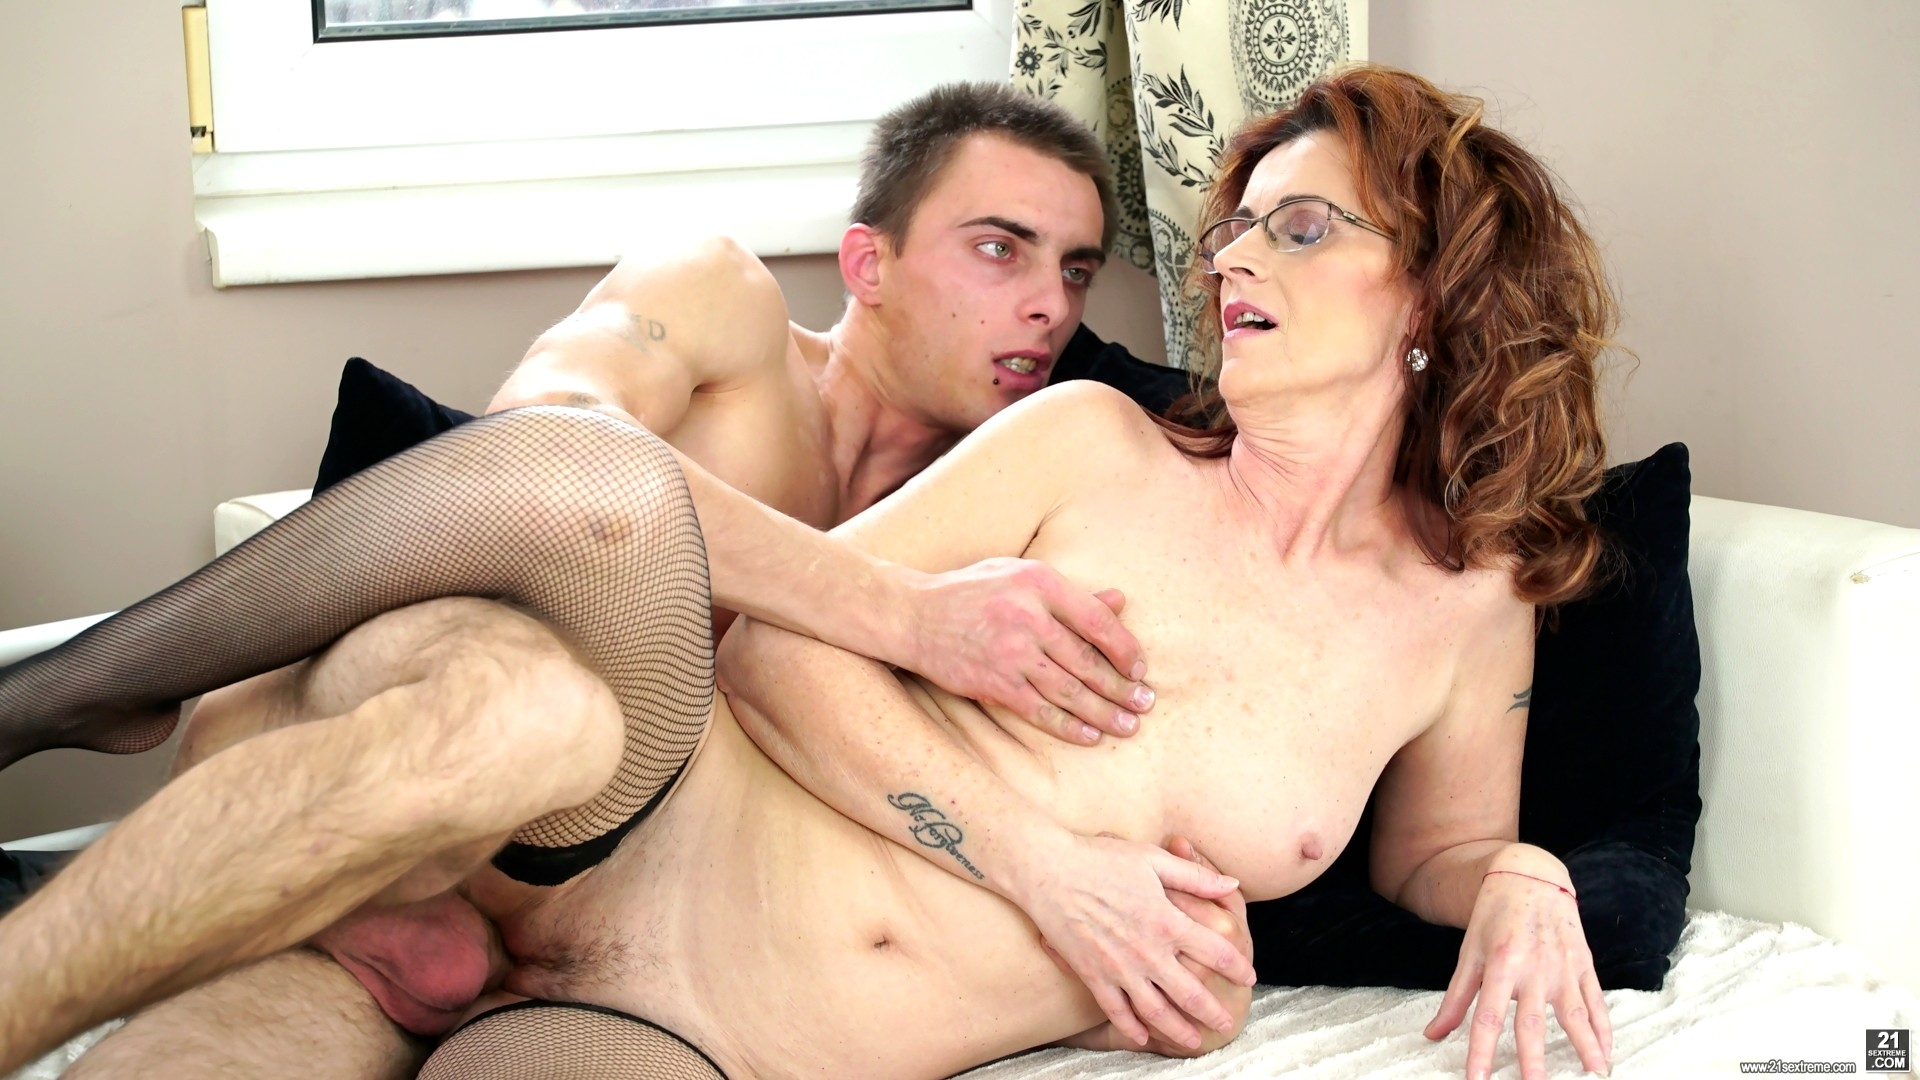 Free Mom And Boy Porn Pics, Best Mature And Boy Sex Images